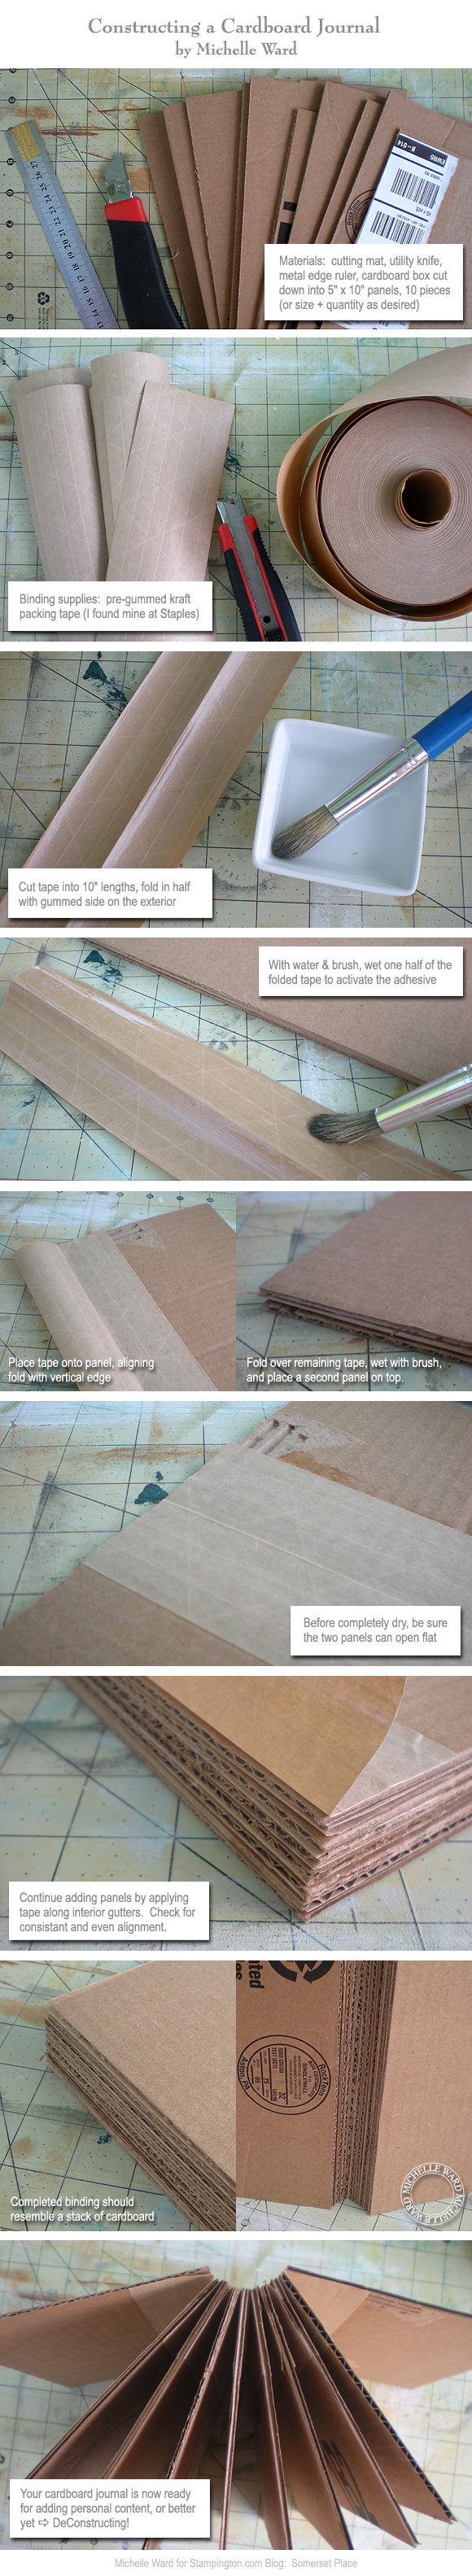 MKW-Cardboard-Journal-Tutorial-1